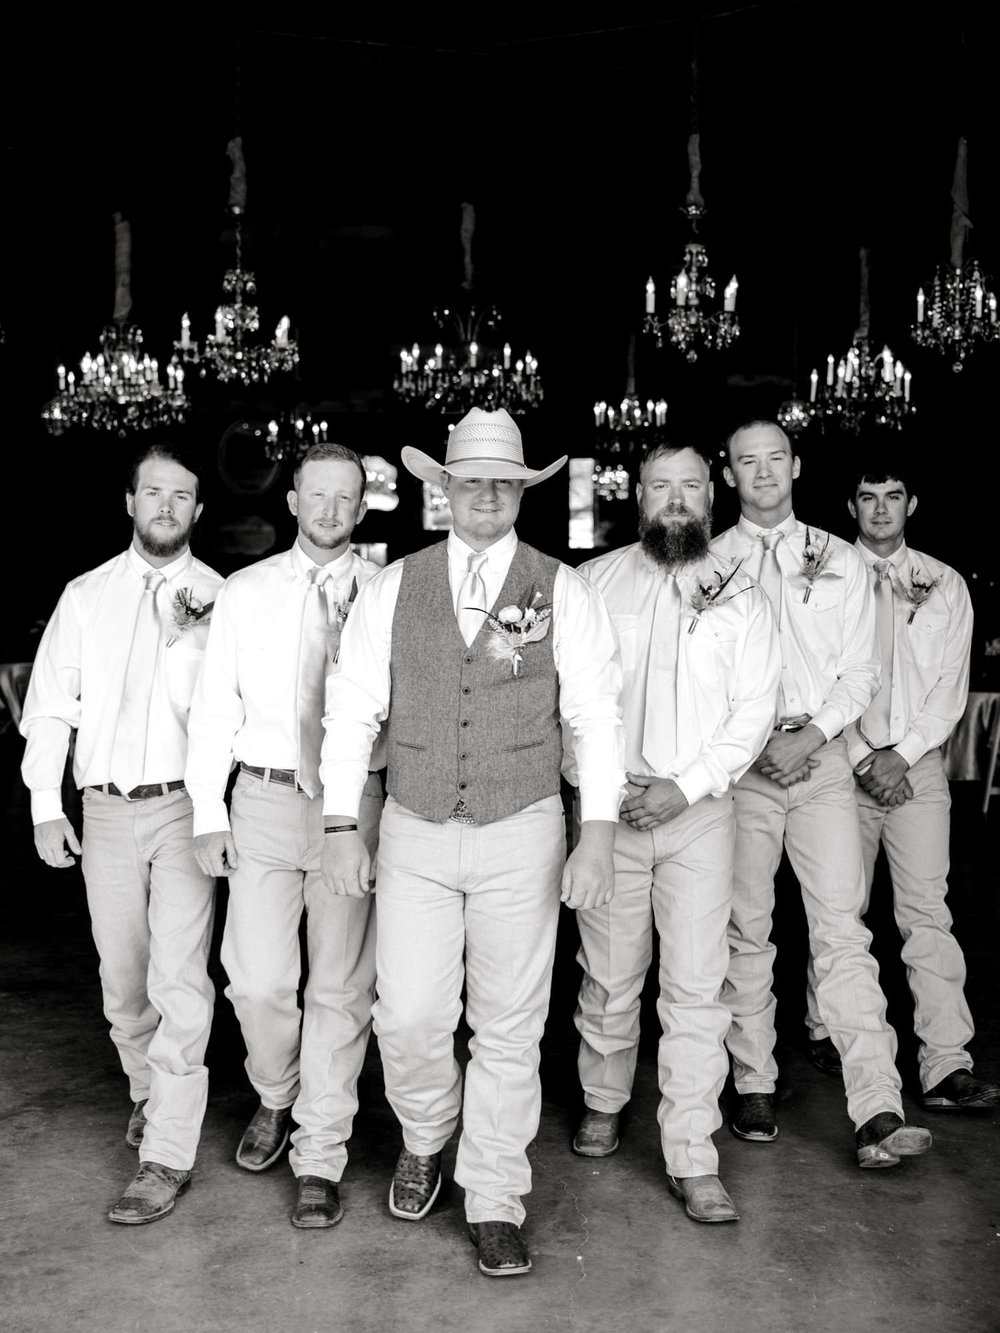 SARAH+TREVOR+BADGETT+SPARROW+CREEK+GRAHAM+TEXAS+ALLEEJ+WEDDINGS_0030.jpg